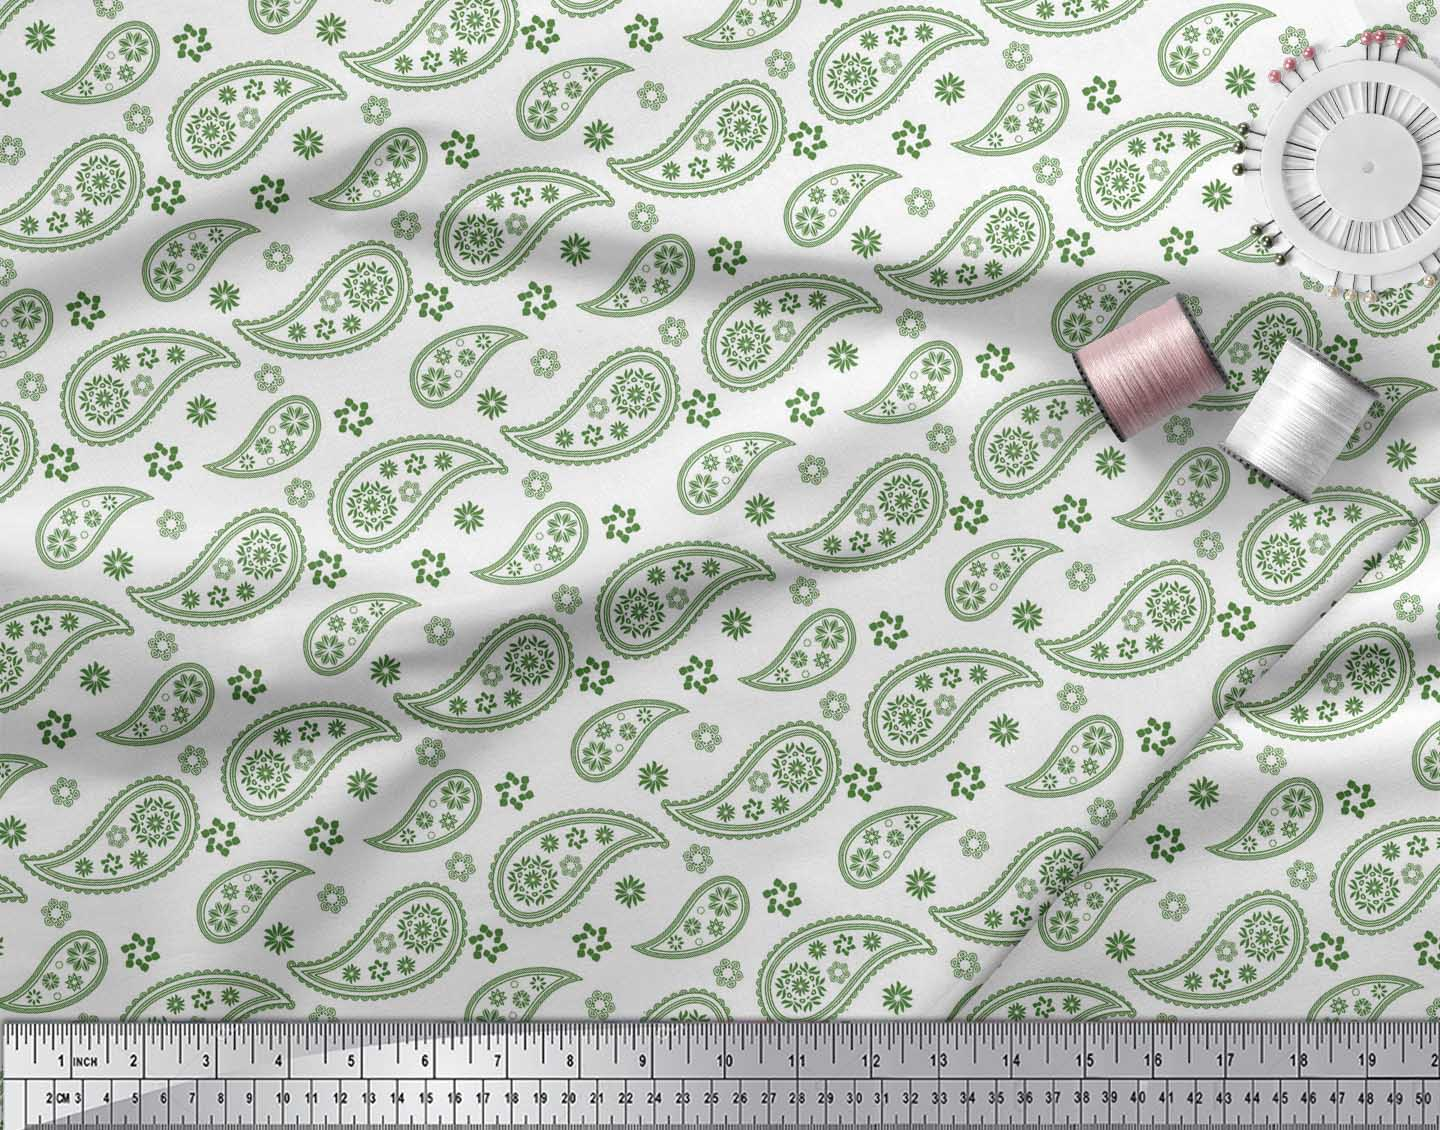 Soimoi-Green-Cotton-Poplin-Fabric-Paisleys-Paisley-Printed-Craft-6hk thumbnail 3